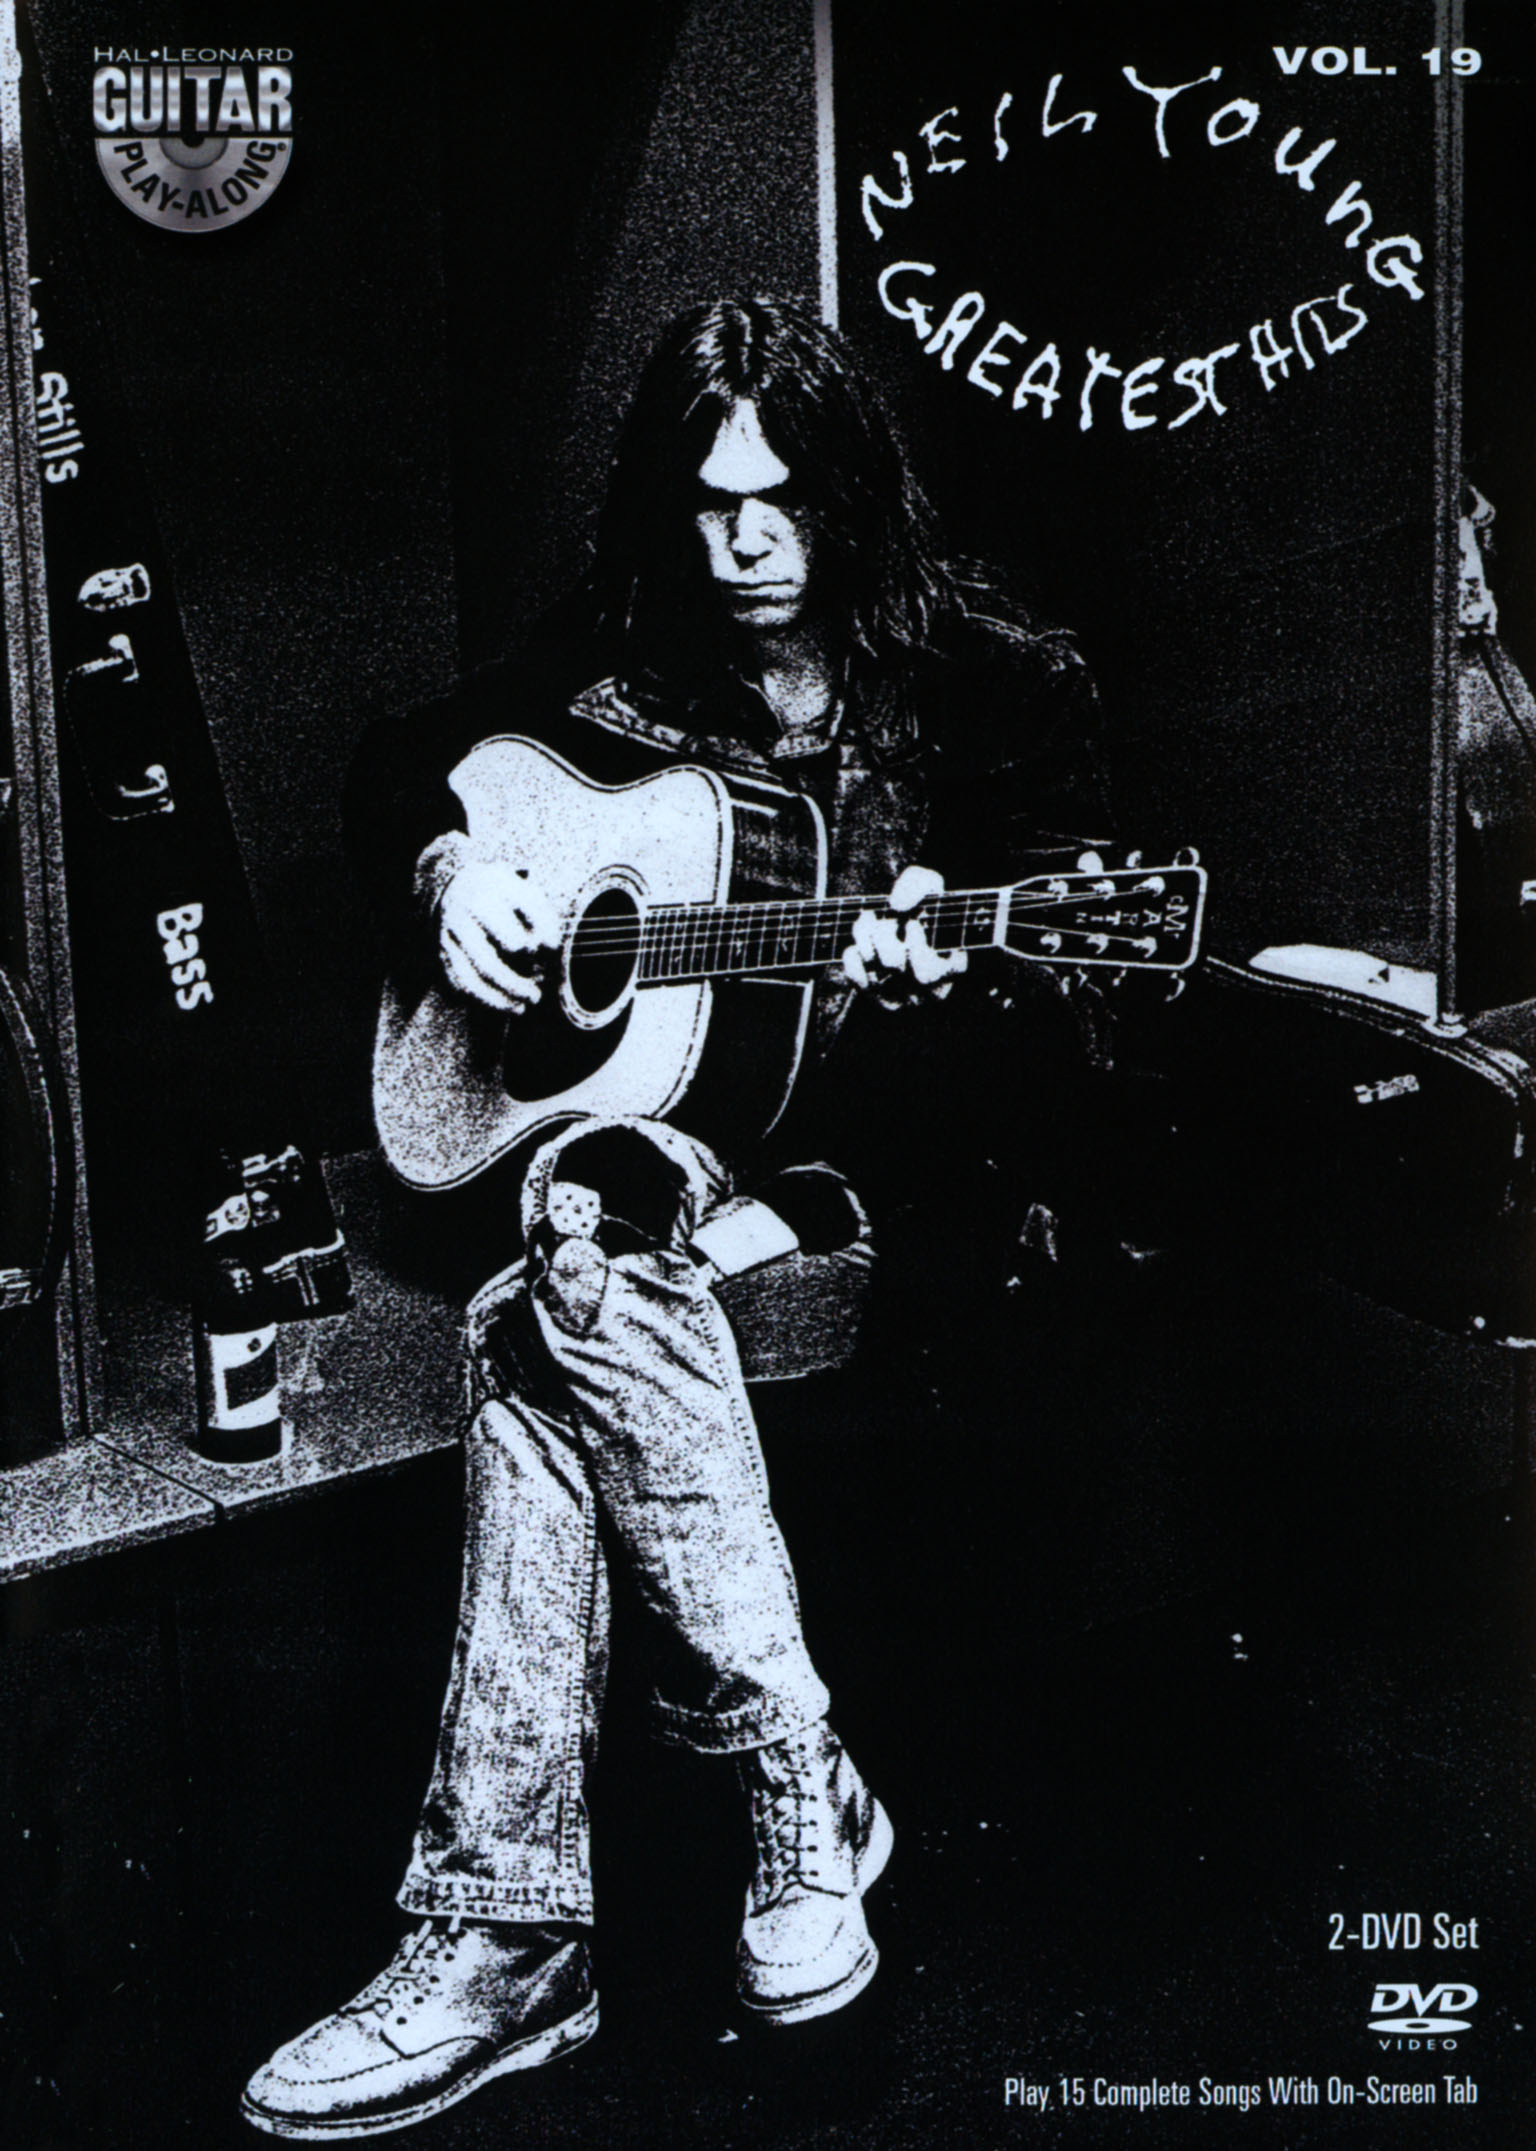 Guitar Play-Along, Vol. 19: Neil Young - Greatest Hits